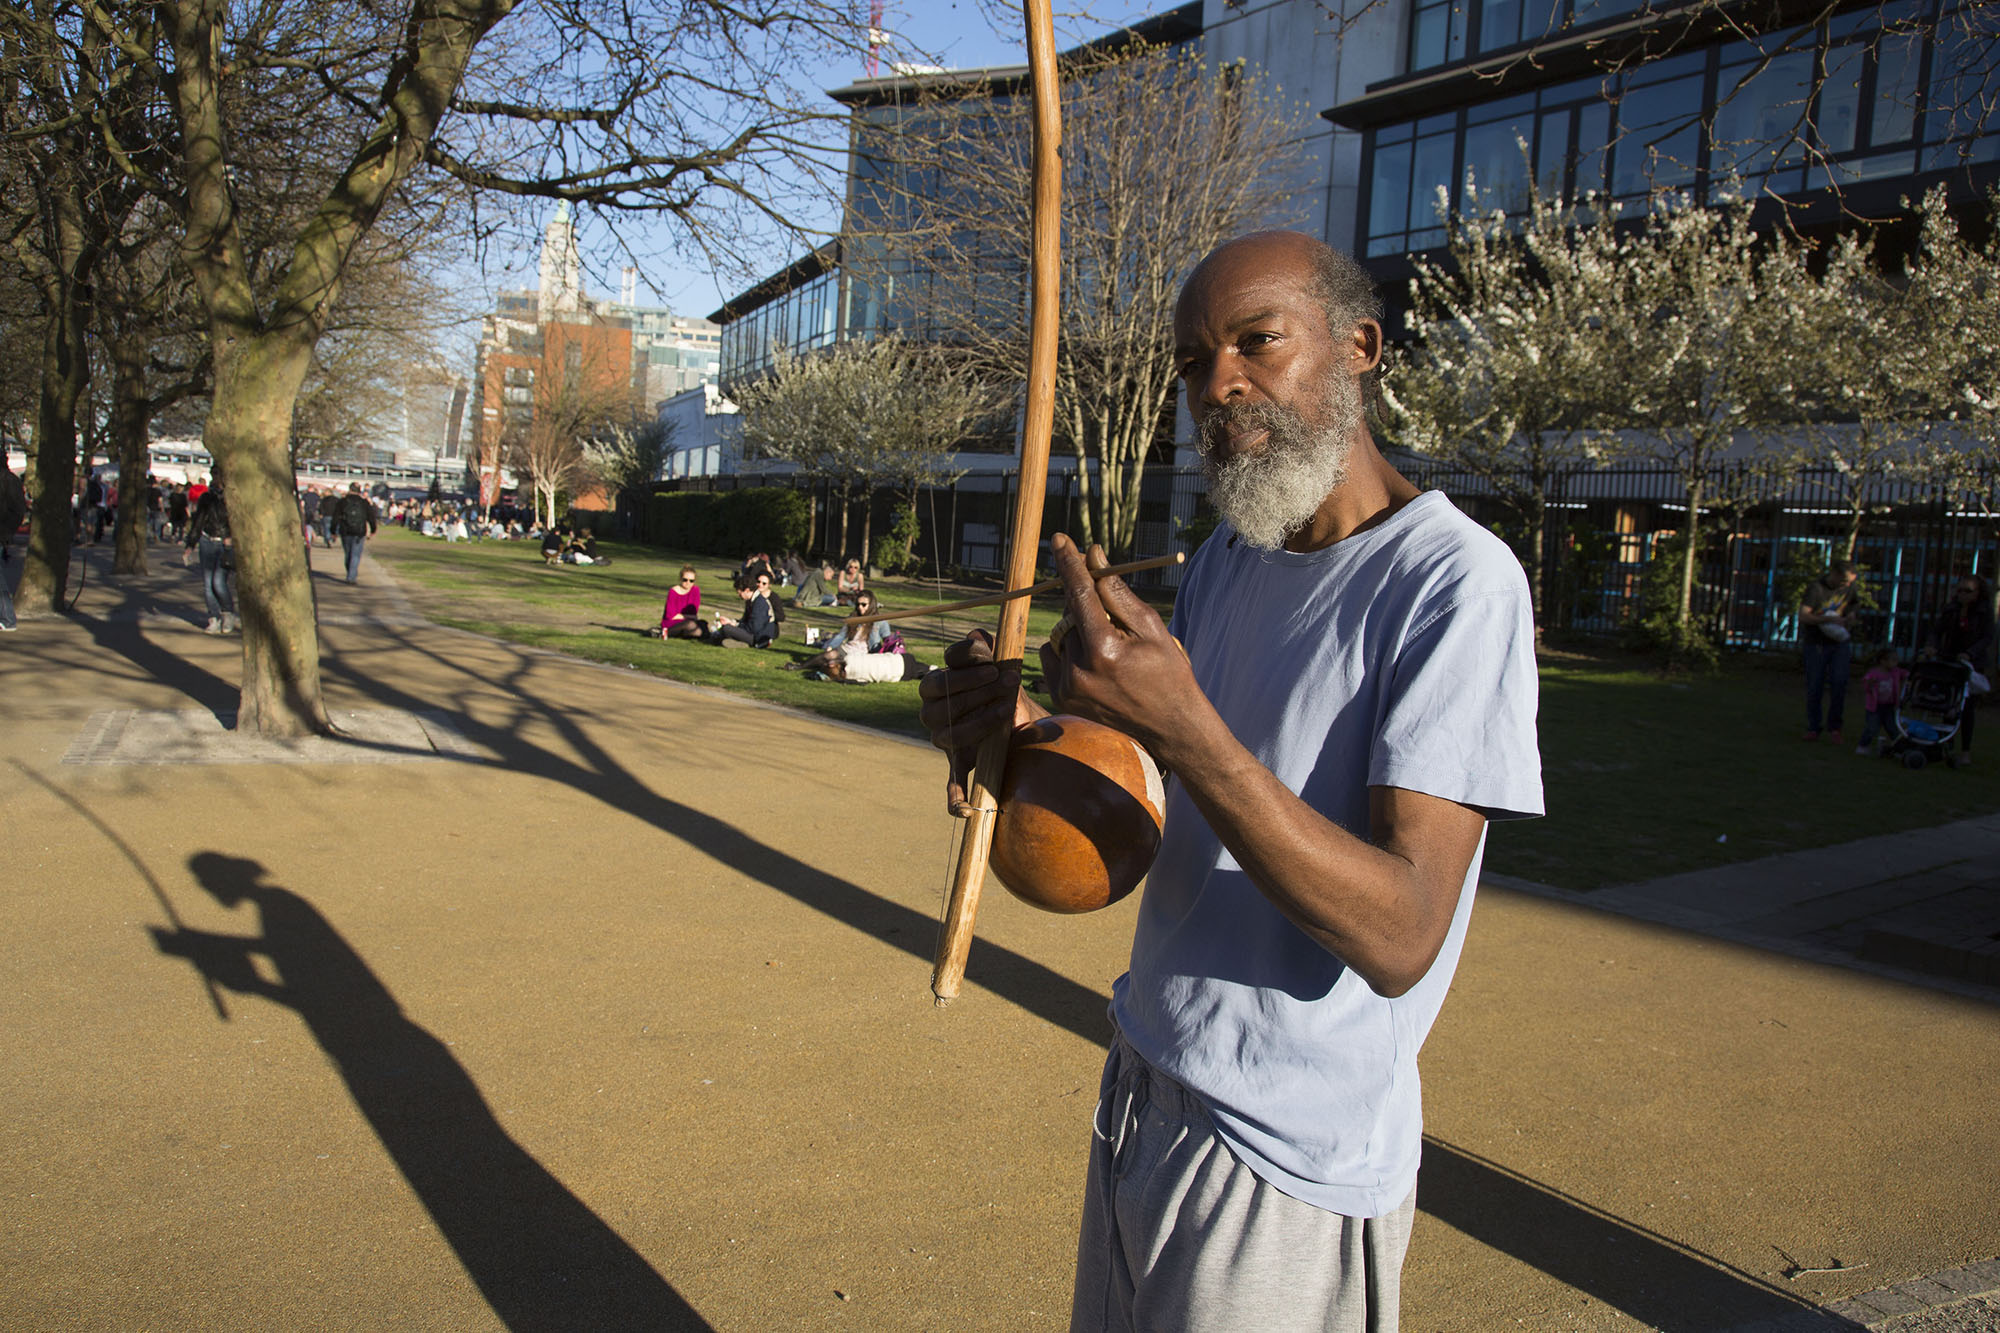 Busker casting his shadow in evening light playing a berimbau.